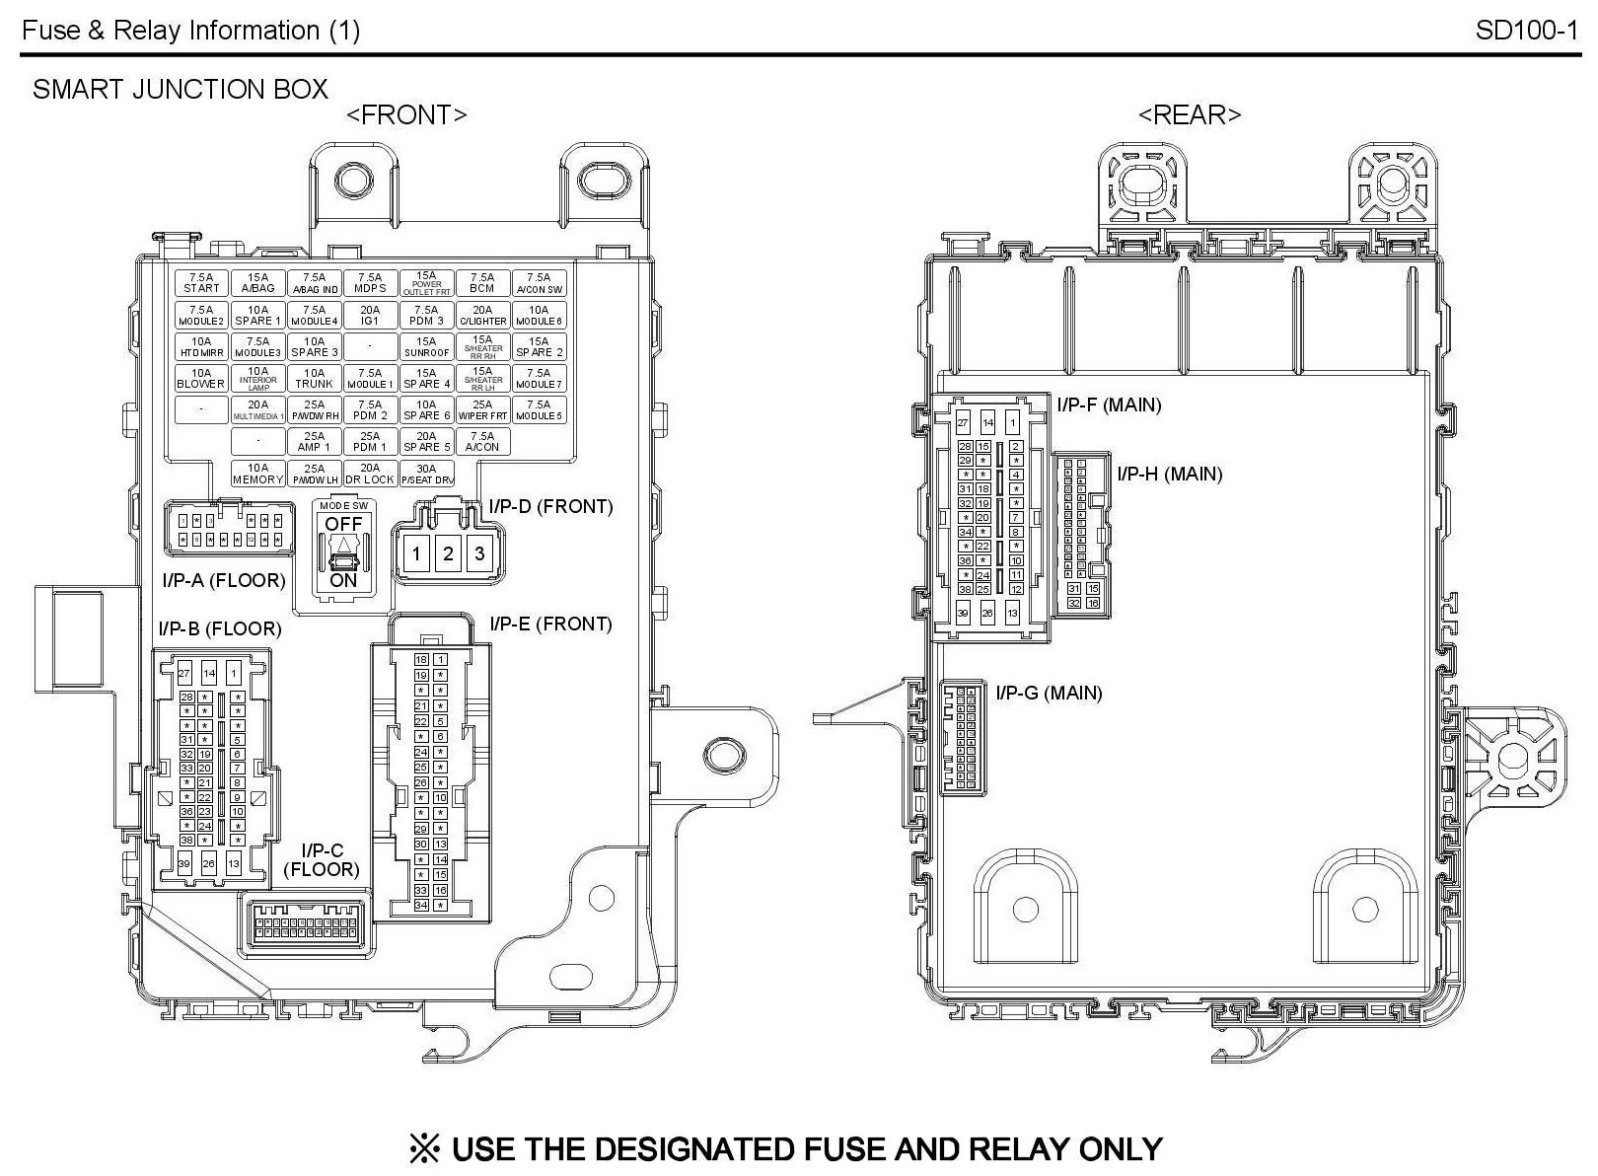 hyundai xg350 fuse box diagram  hyundai  free engine image